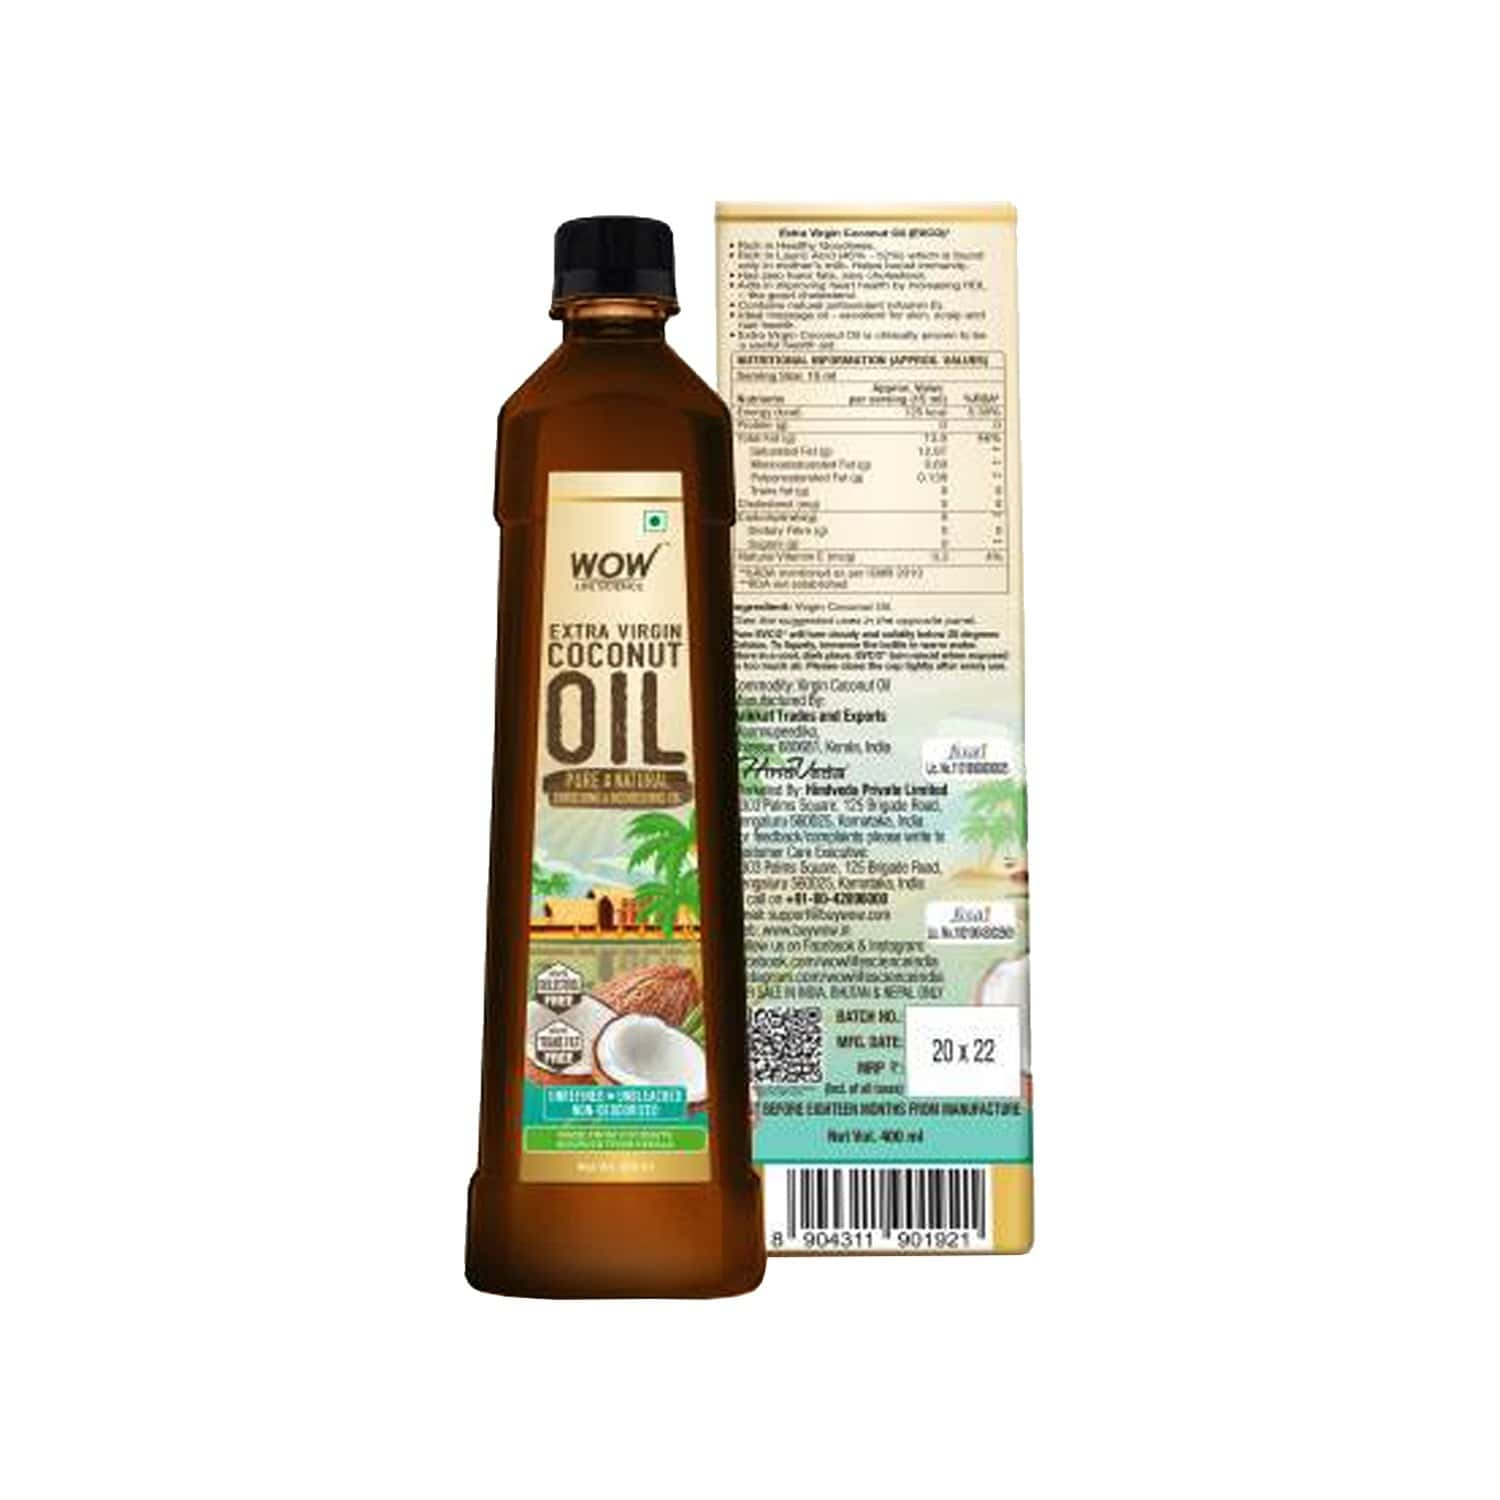 Wow Life Science Extra Virgin Coconut Oil - 400ml